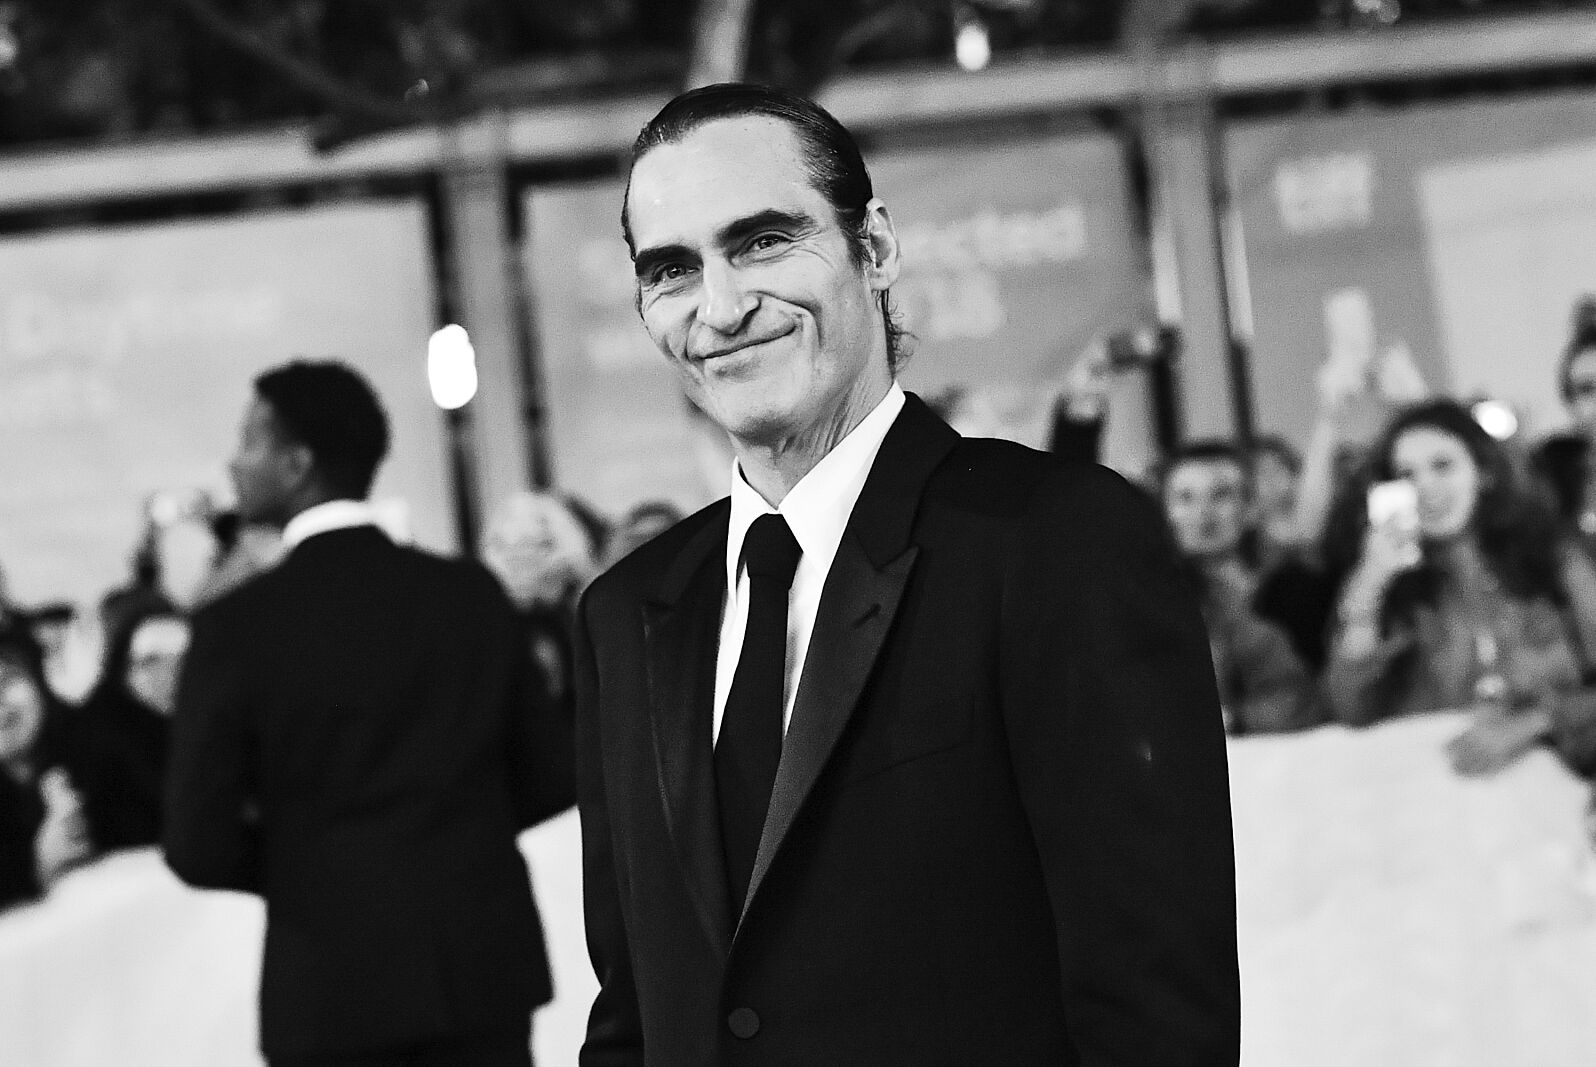 Joker and the top 10 films of Joaquin Phoenix (so far)